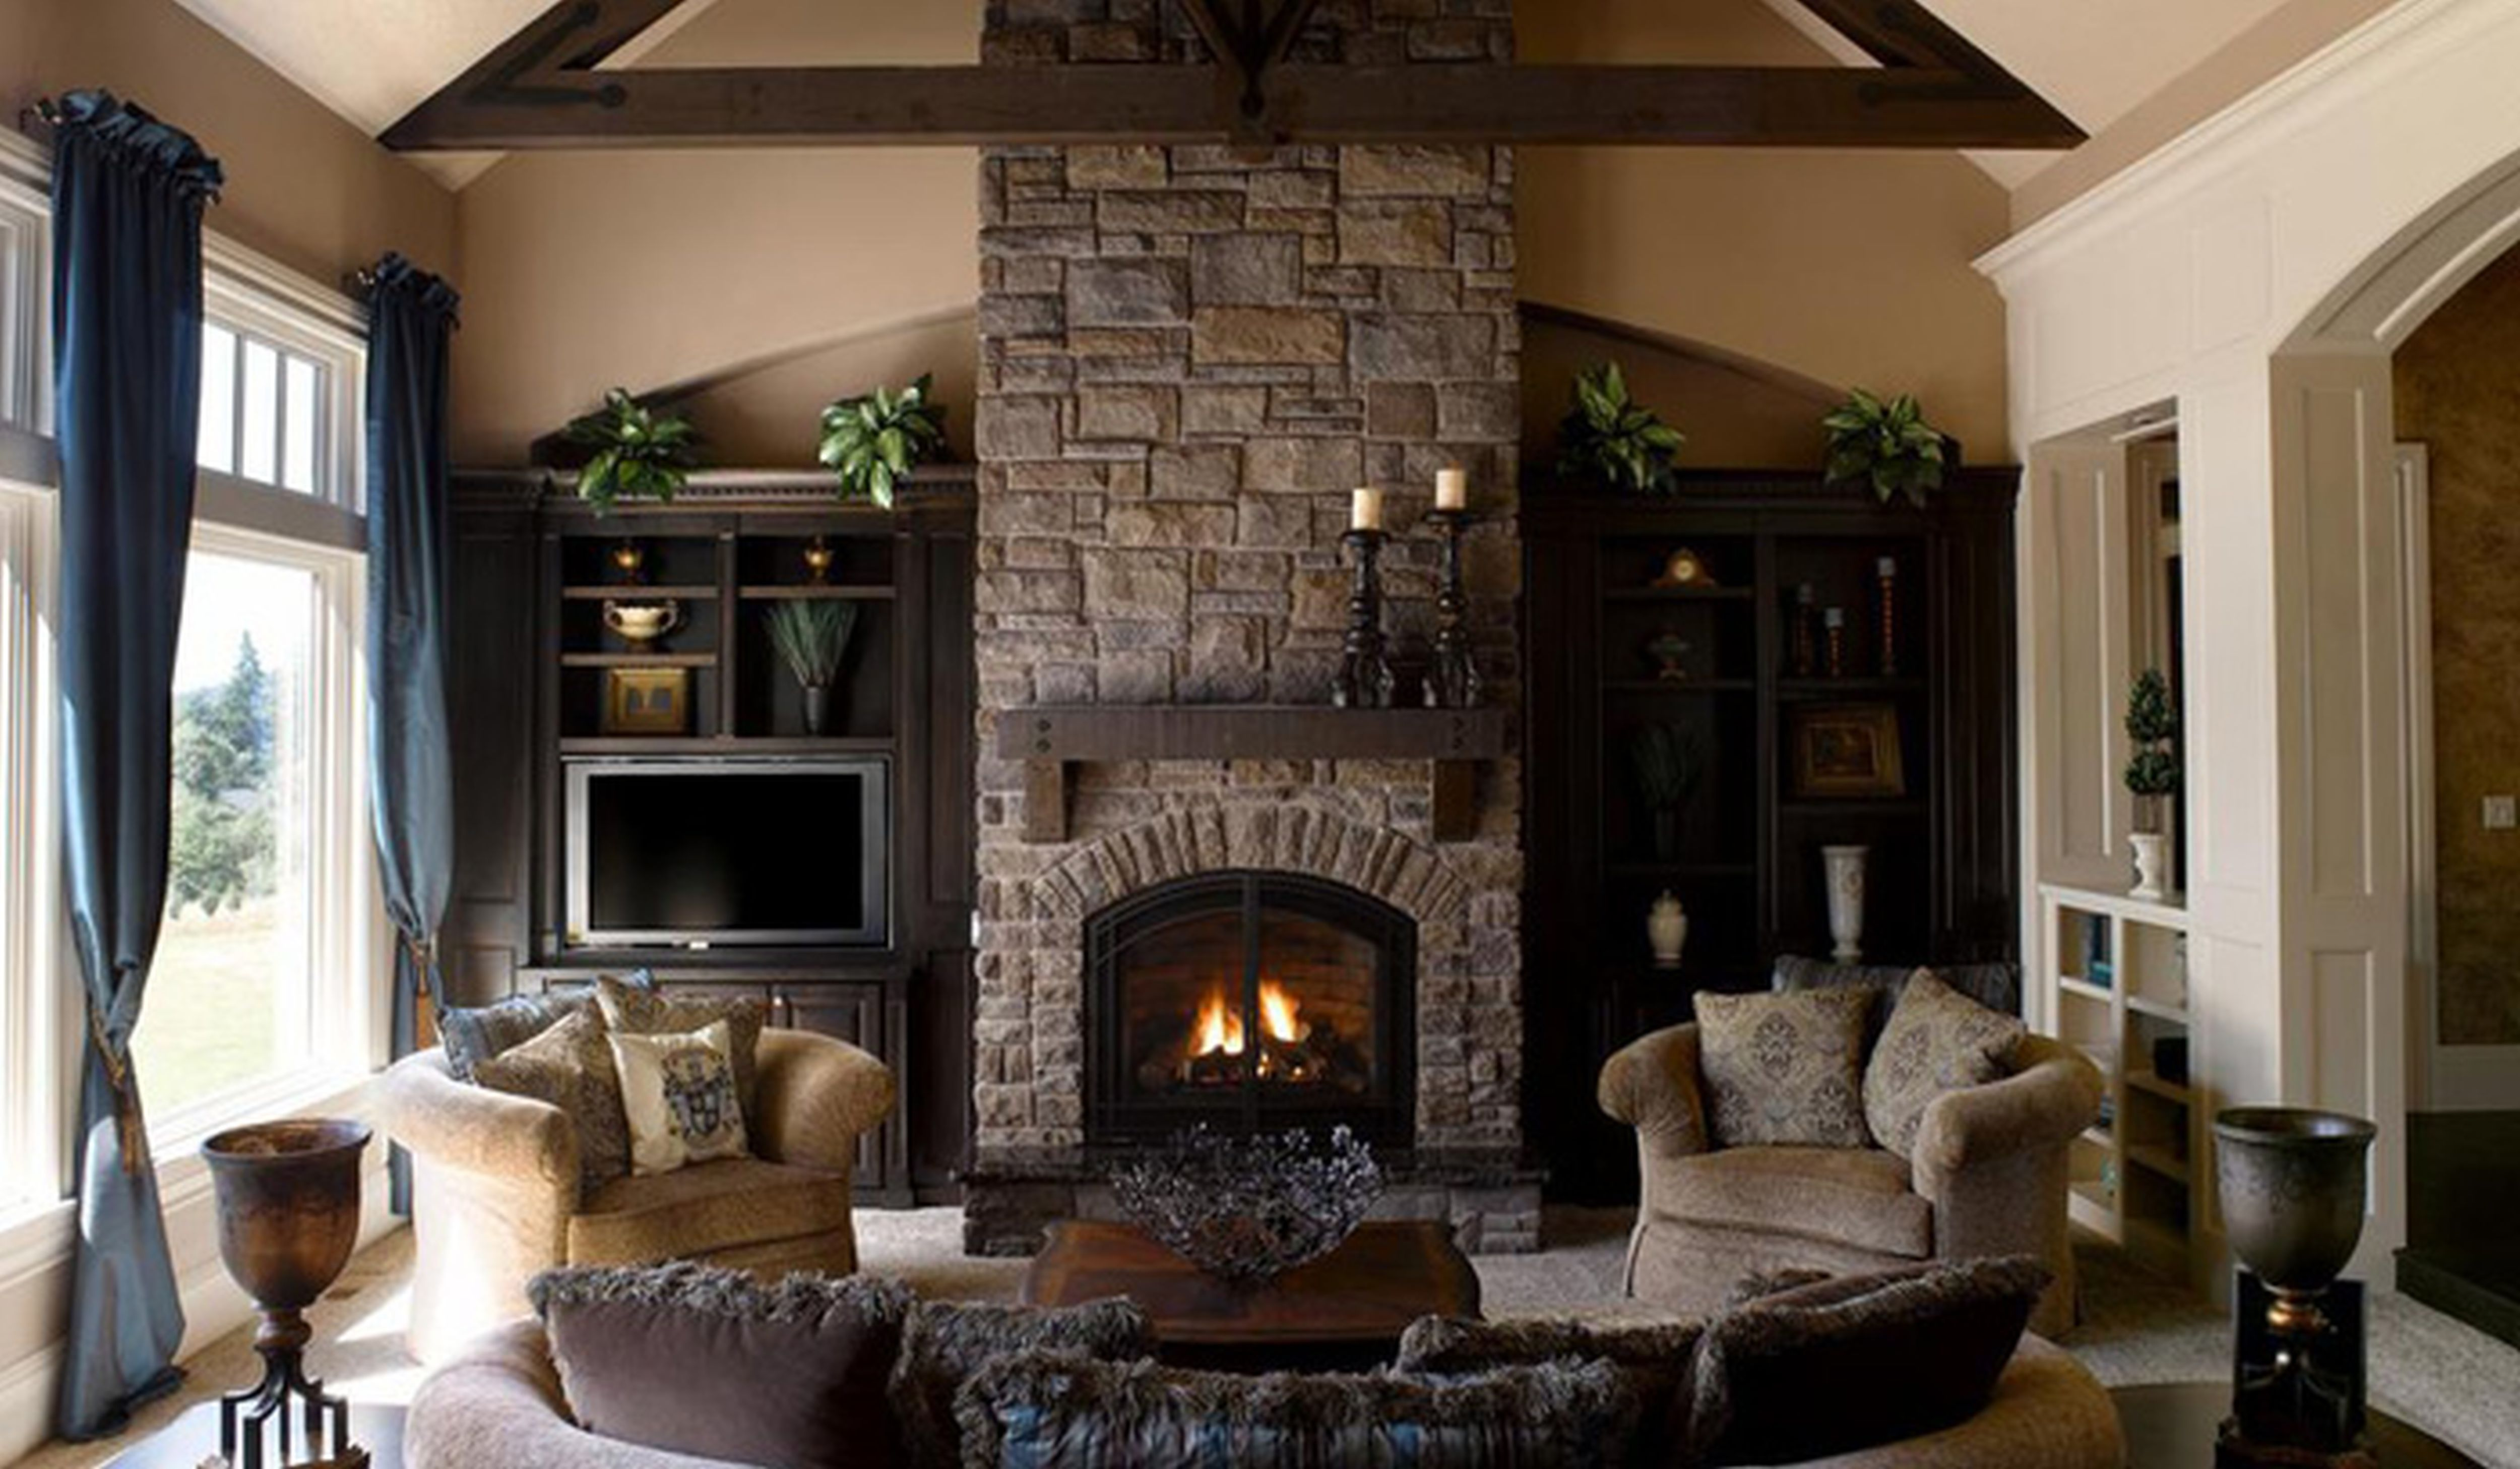 A stone fireplace gives the outdoor space the same cozy look as it